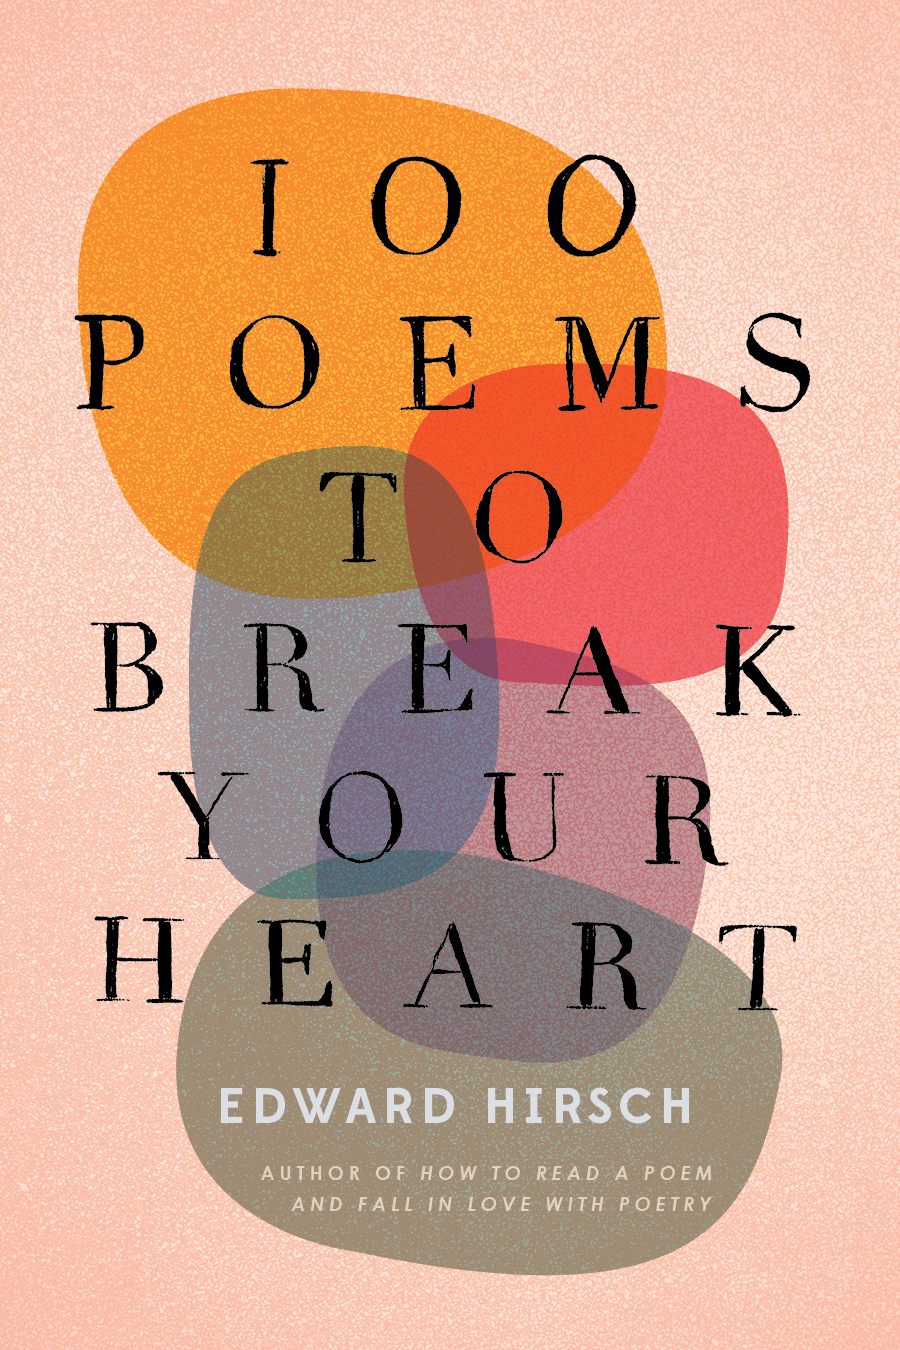 100 Poems to Break Your Heart